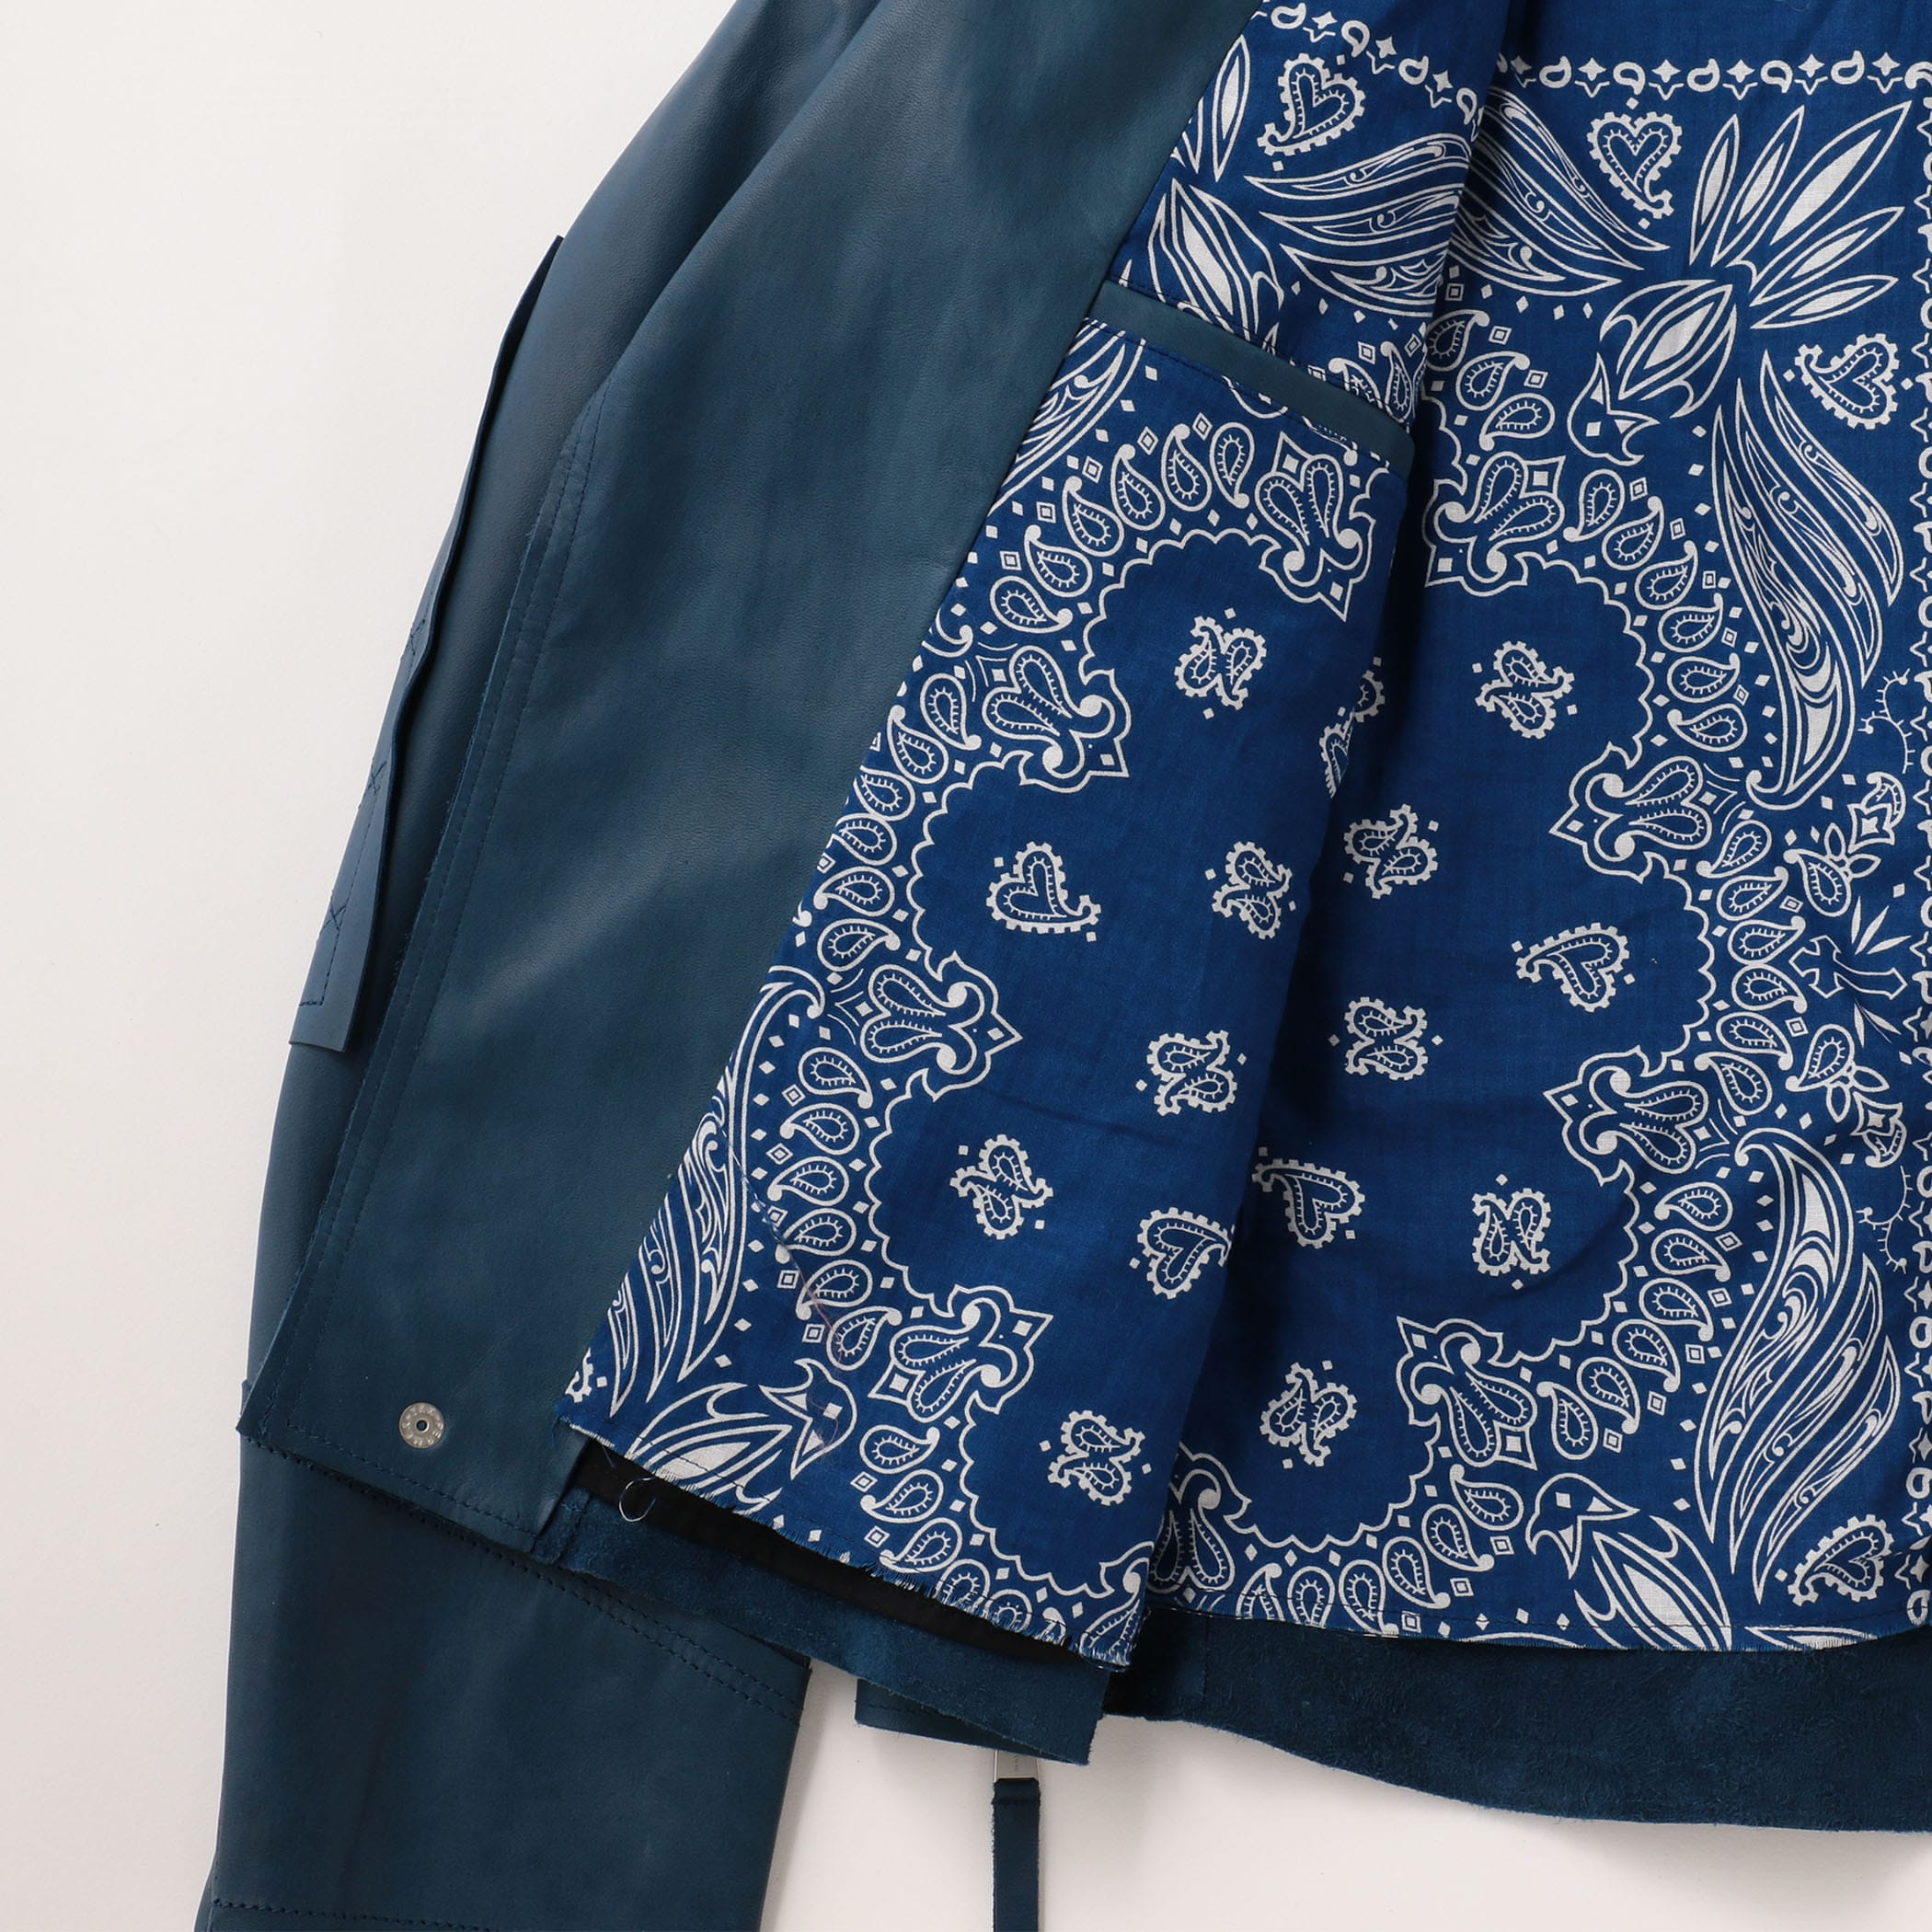 MOTO JACKET COW LEATHER 詳細画像 Indigo 10